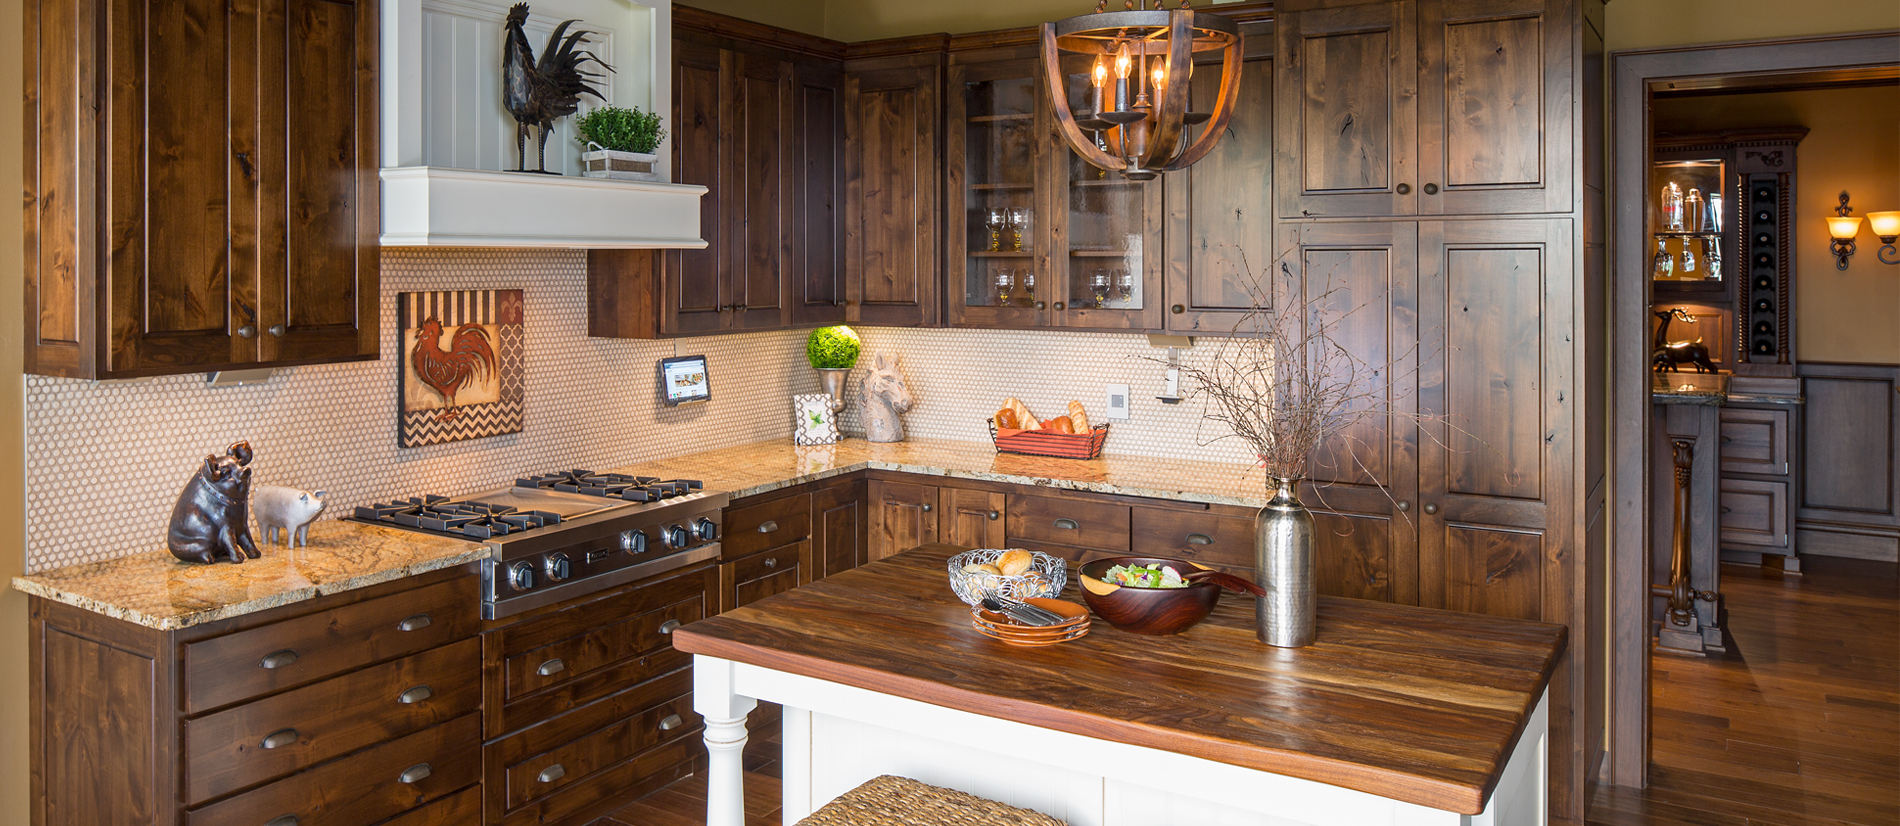 Northland Cabinets Custom Cabinets Kitchens Home Theaters Specialty Cabinets In Mn